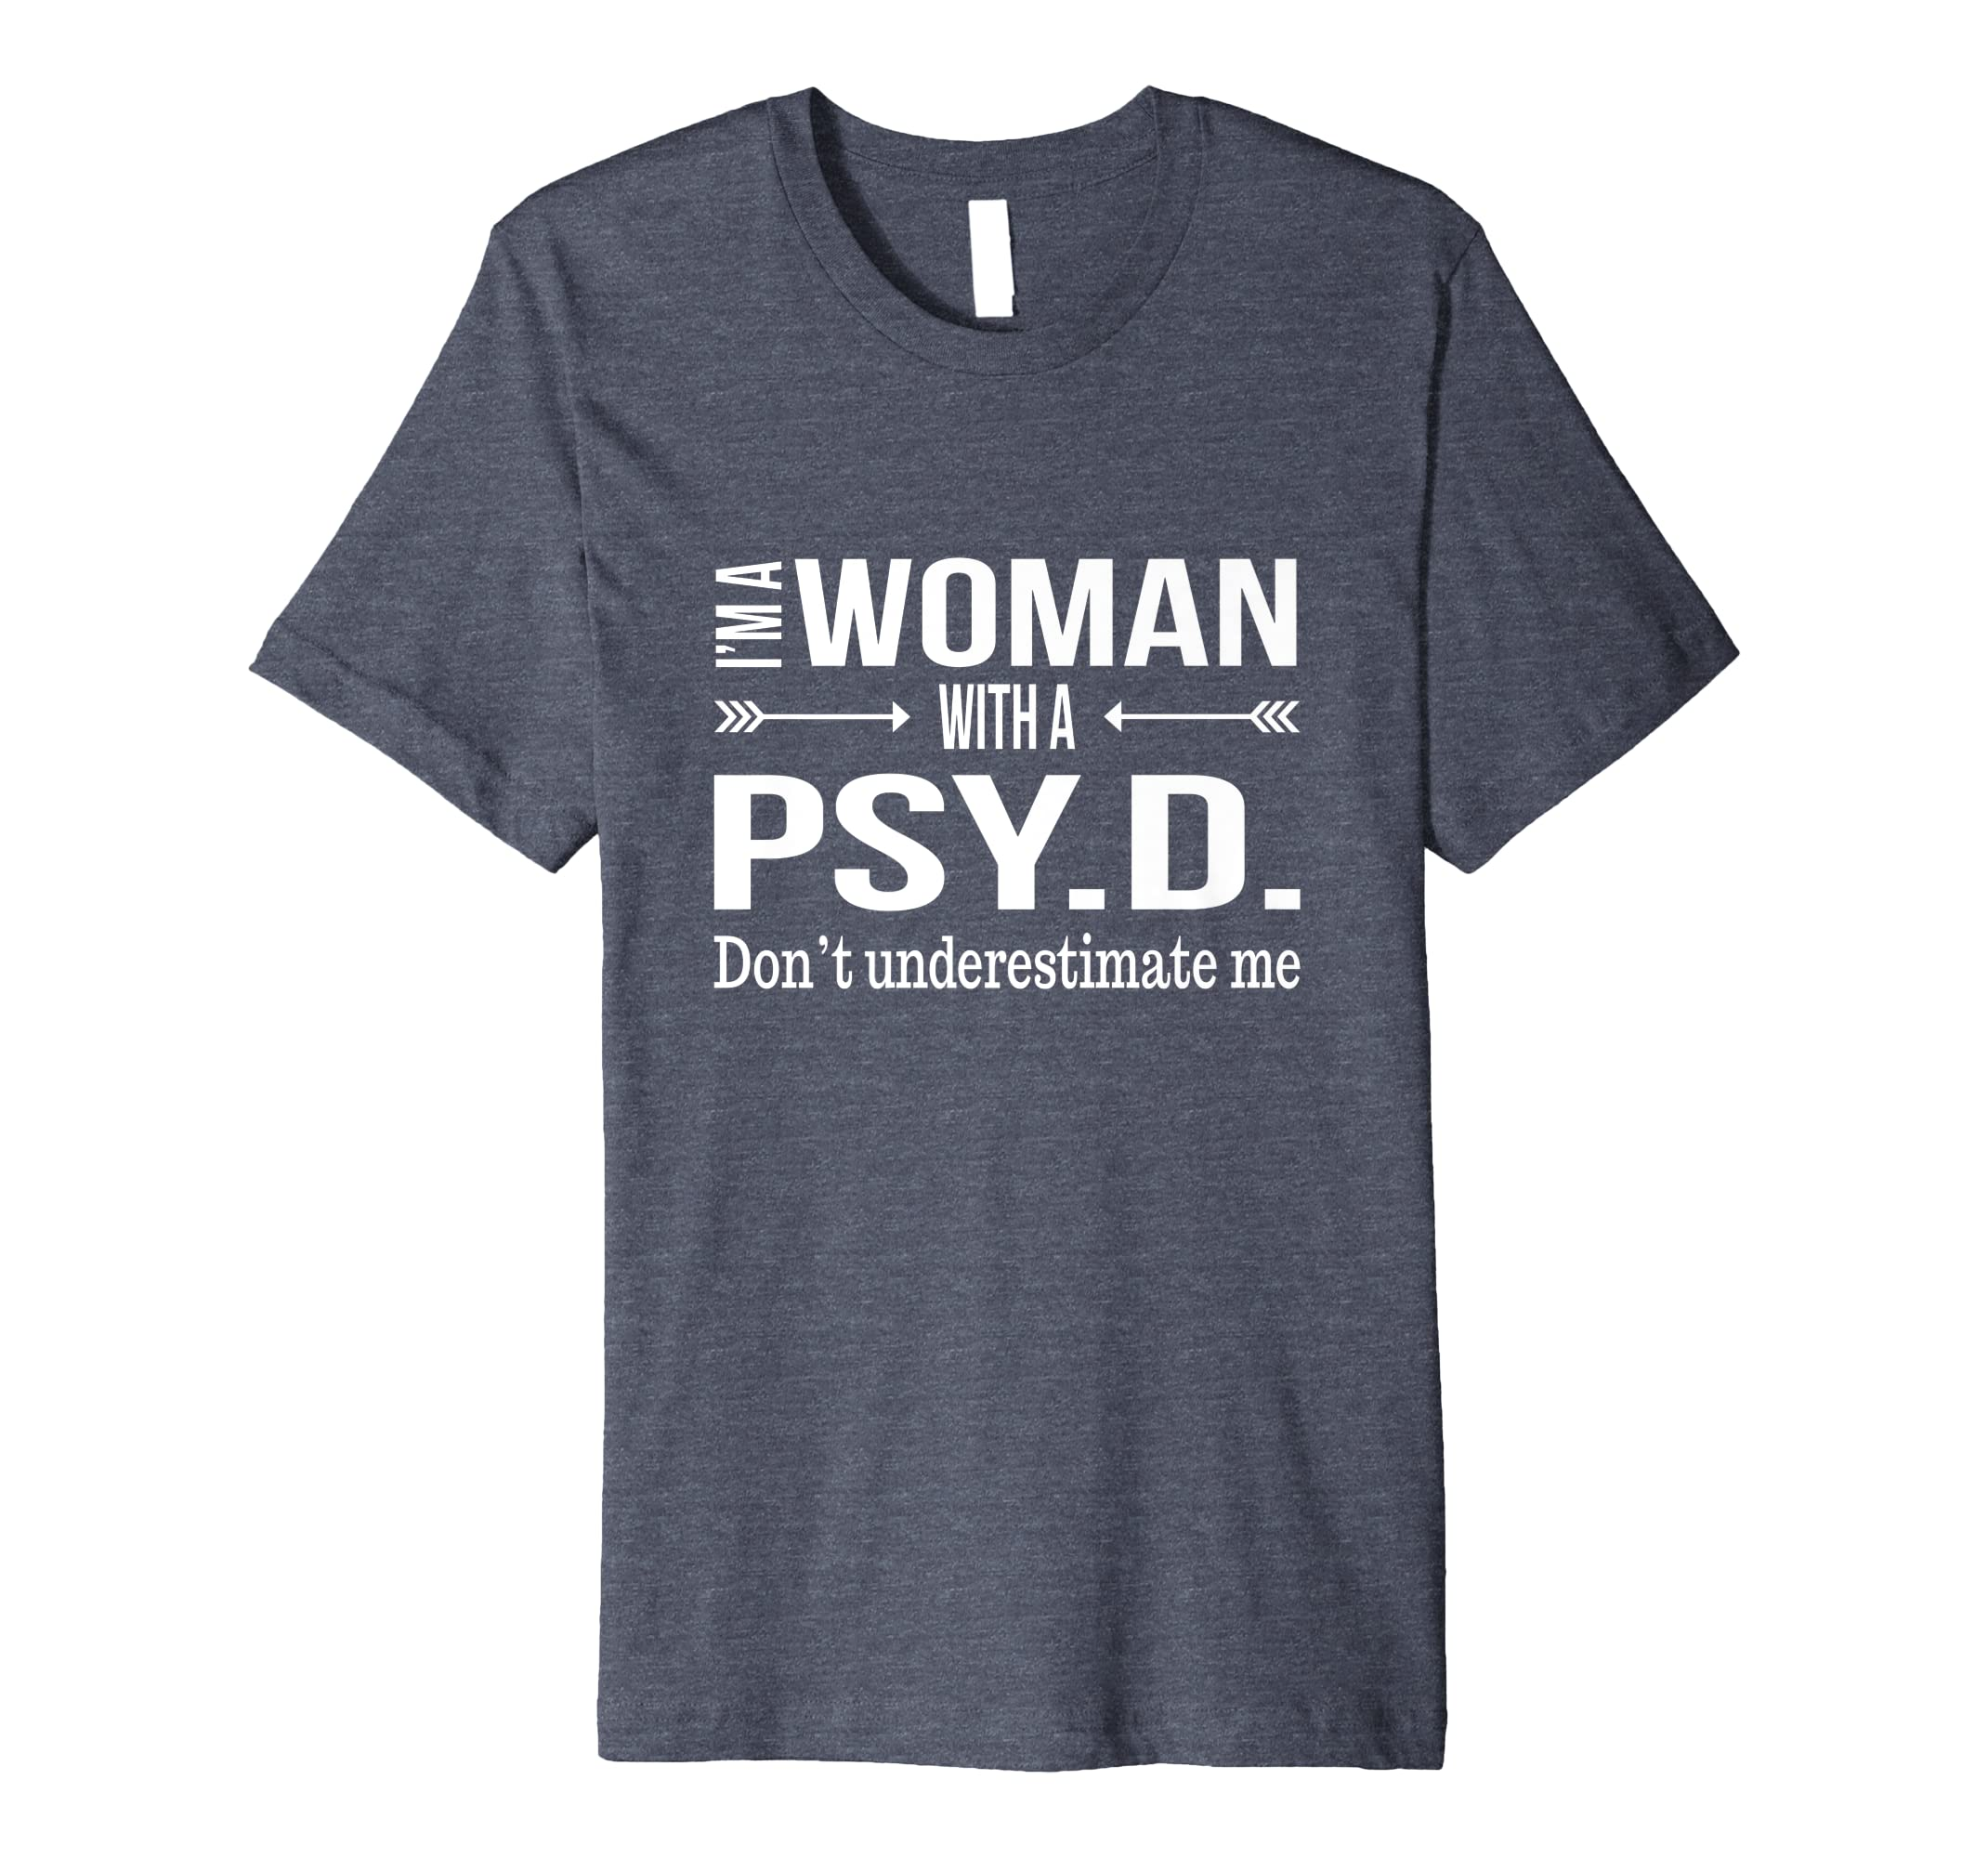 Funny Psy.D. Gifts for Women Psyd Doctorate Psychology Shirt